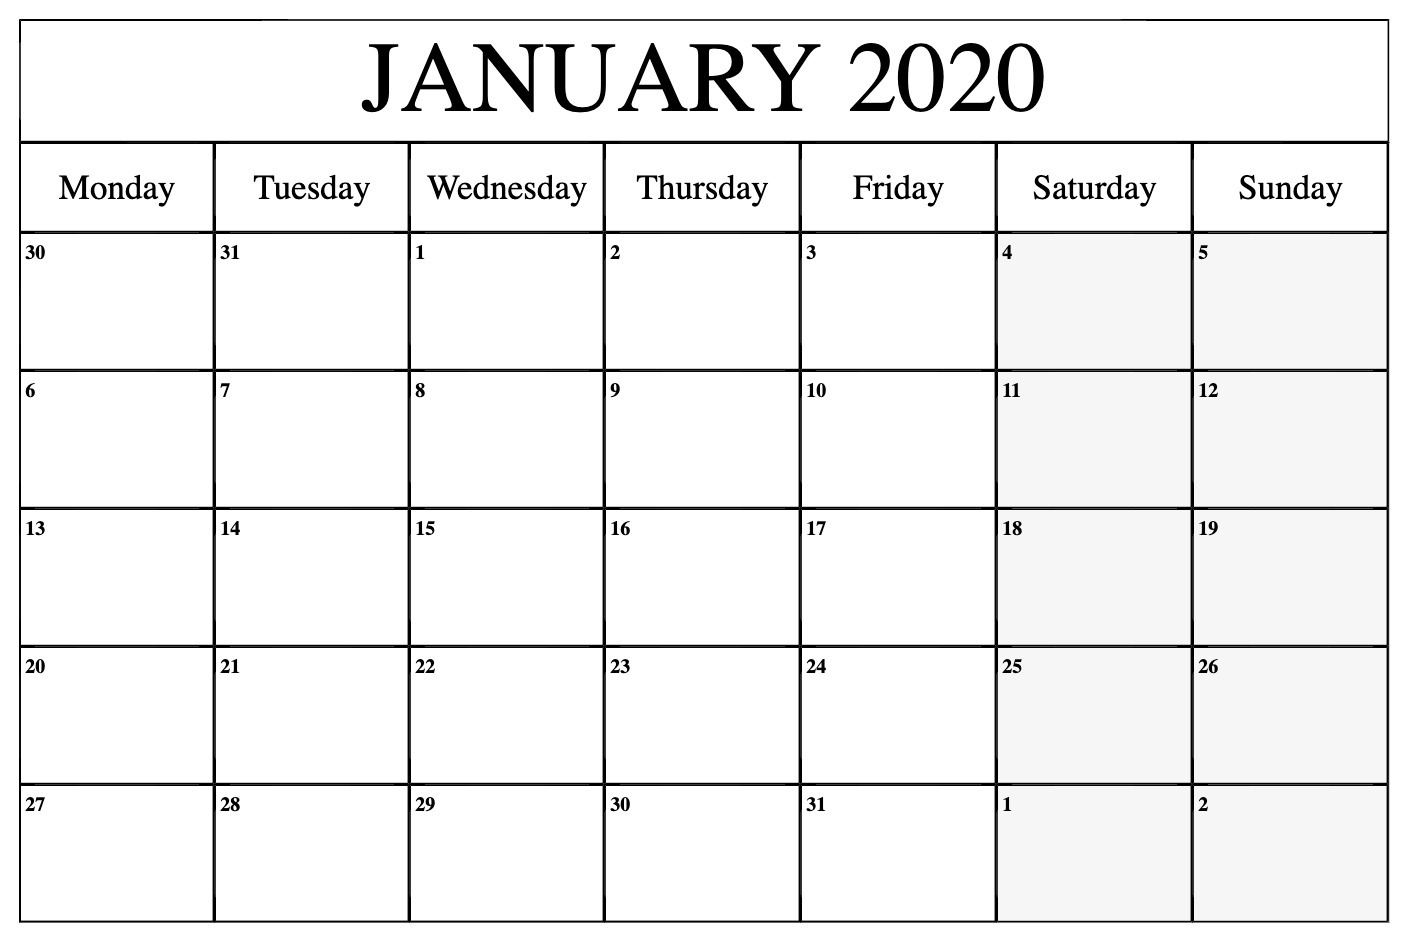 Monthly January 2020 Calendar Printable Pdf Word Excel throughout Printable January 2020 Calendar